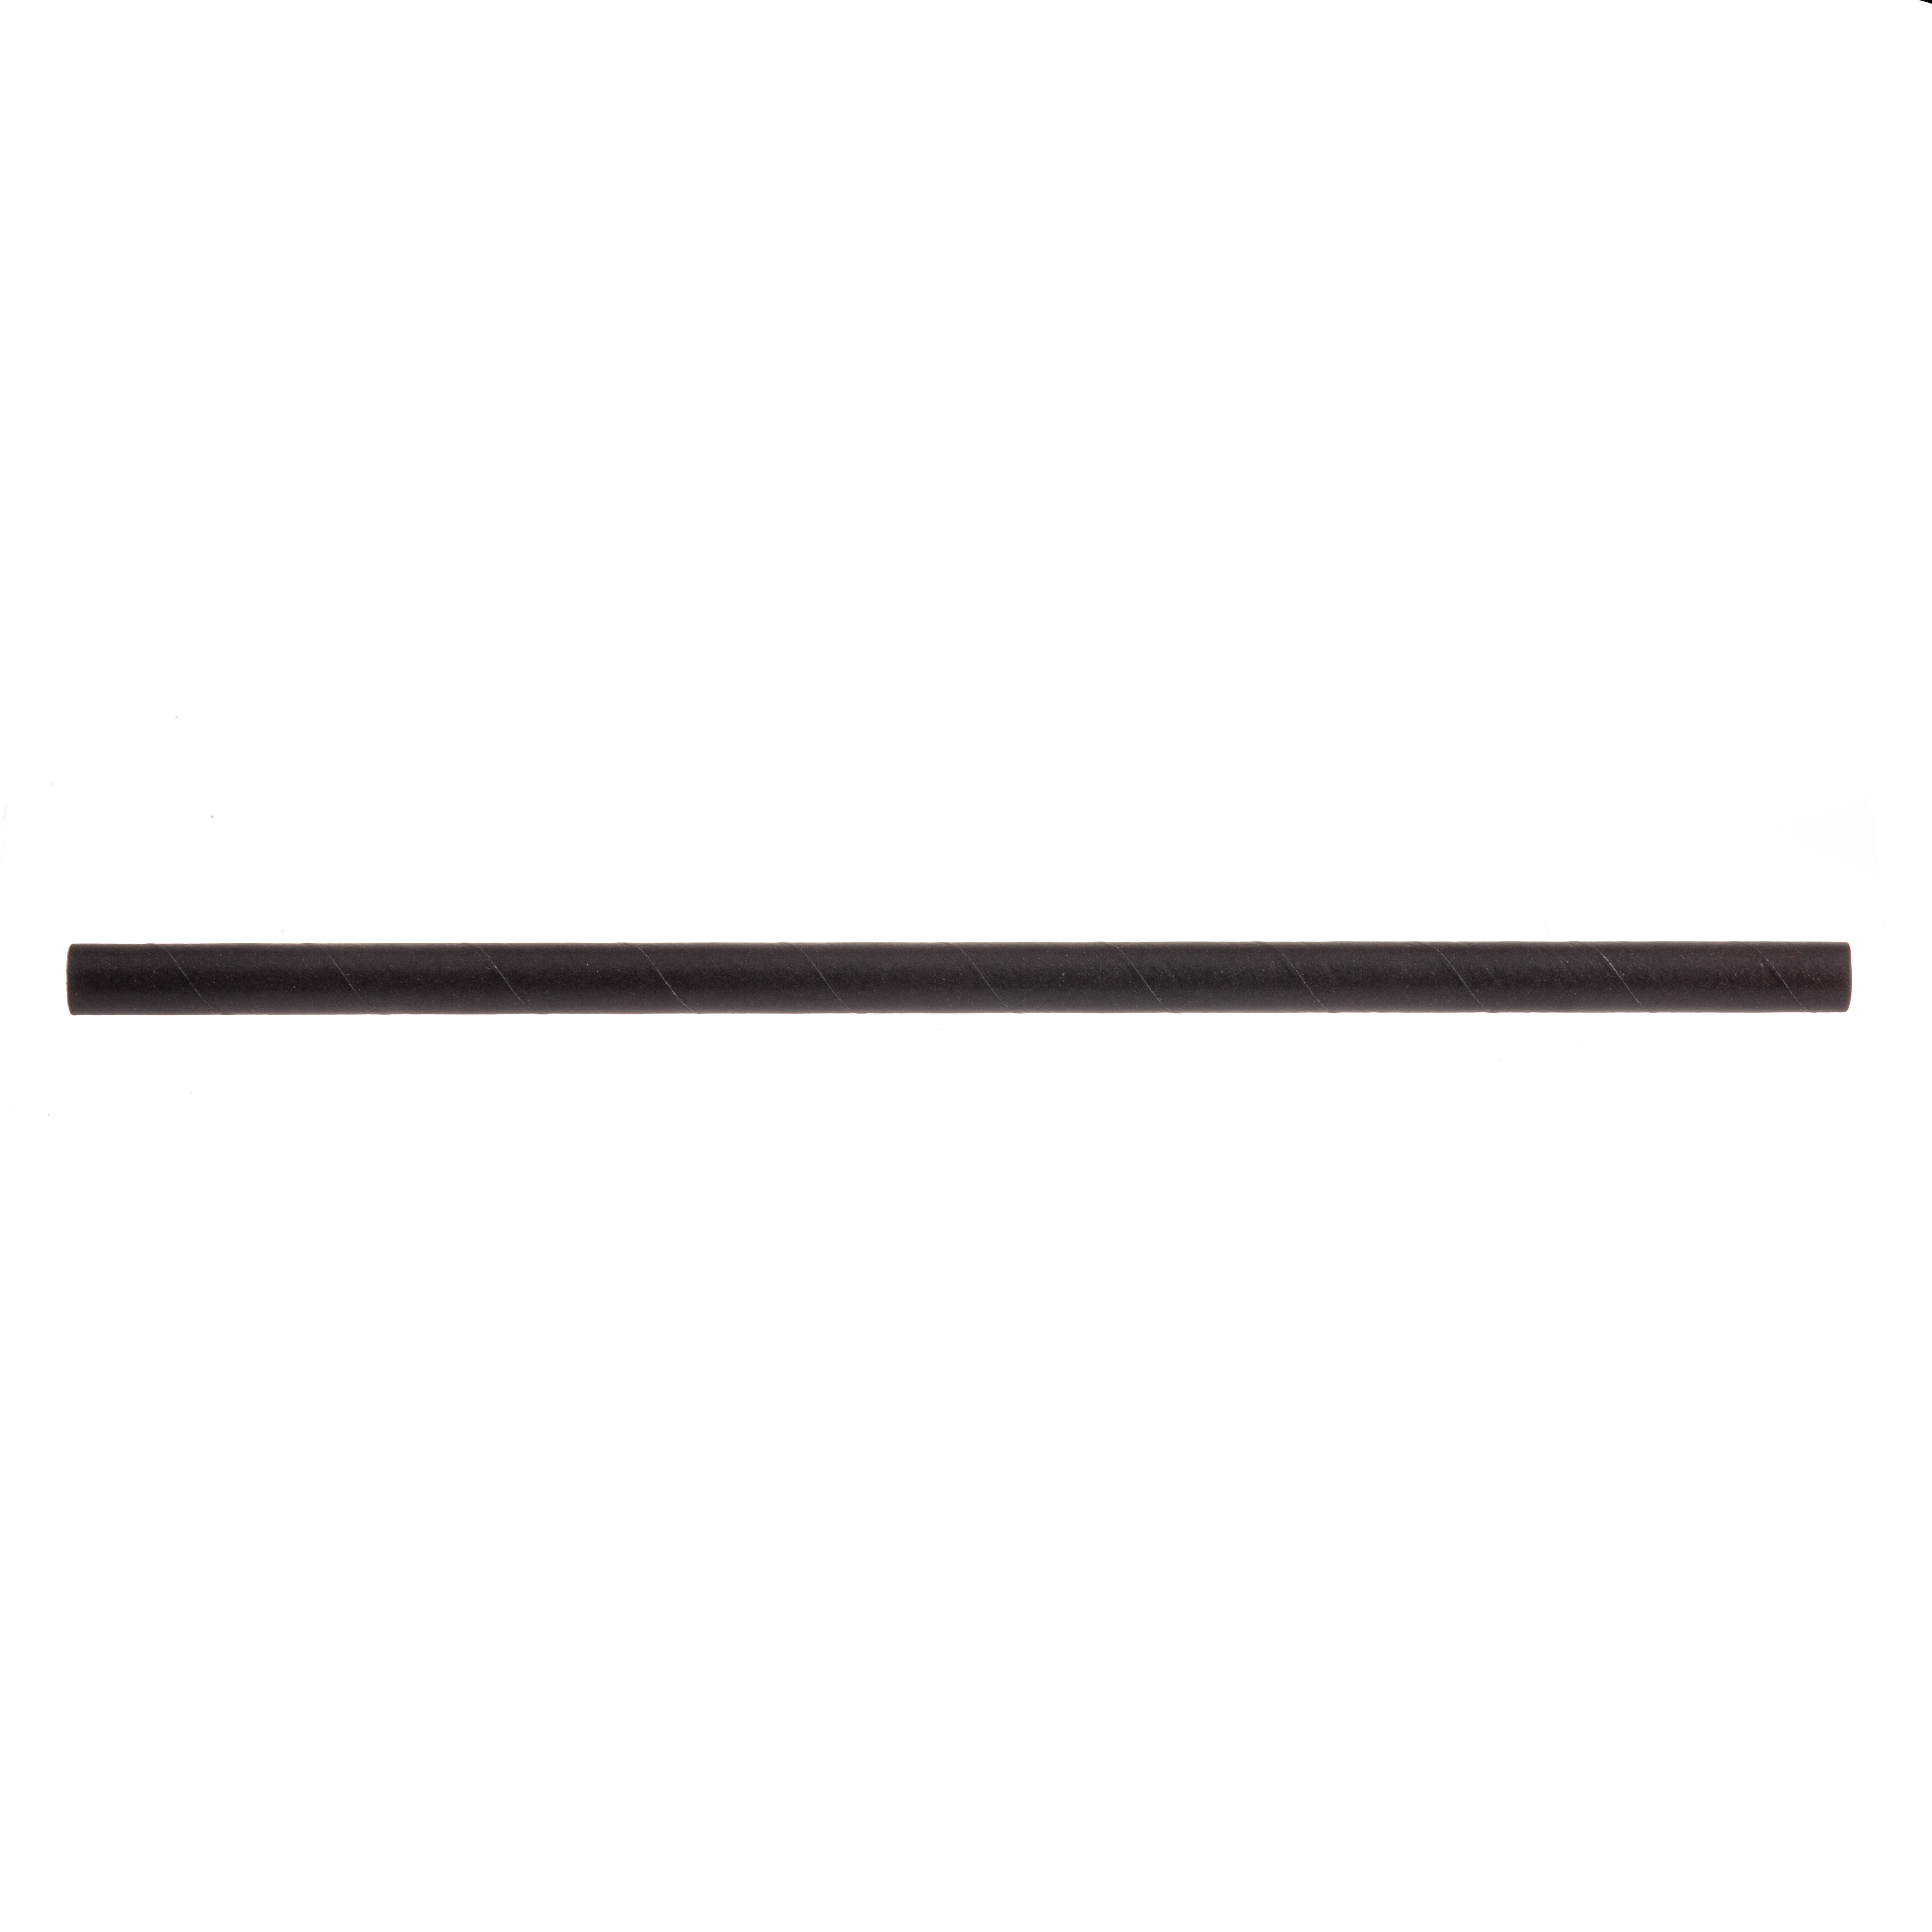 TableCraft Products 700106 straws